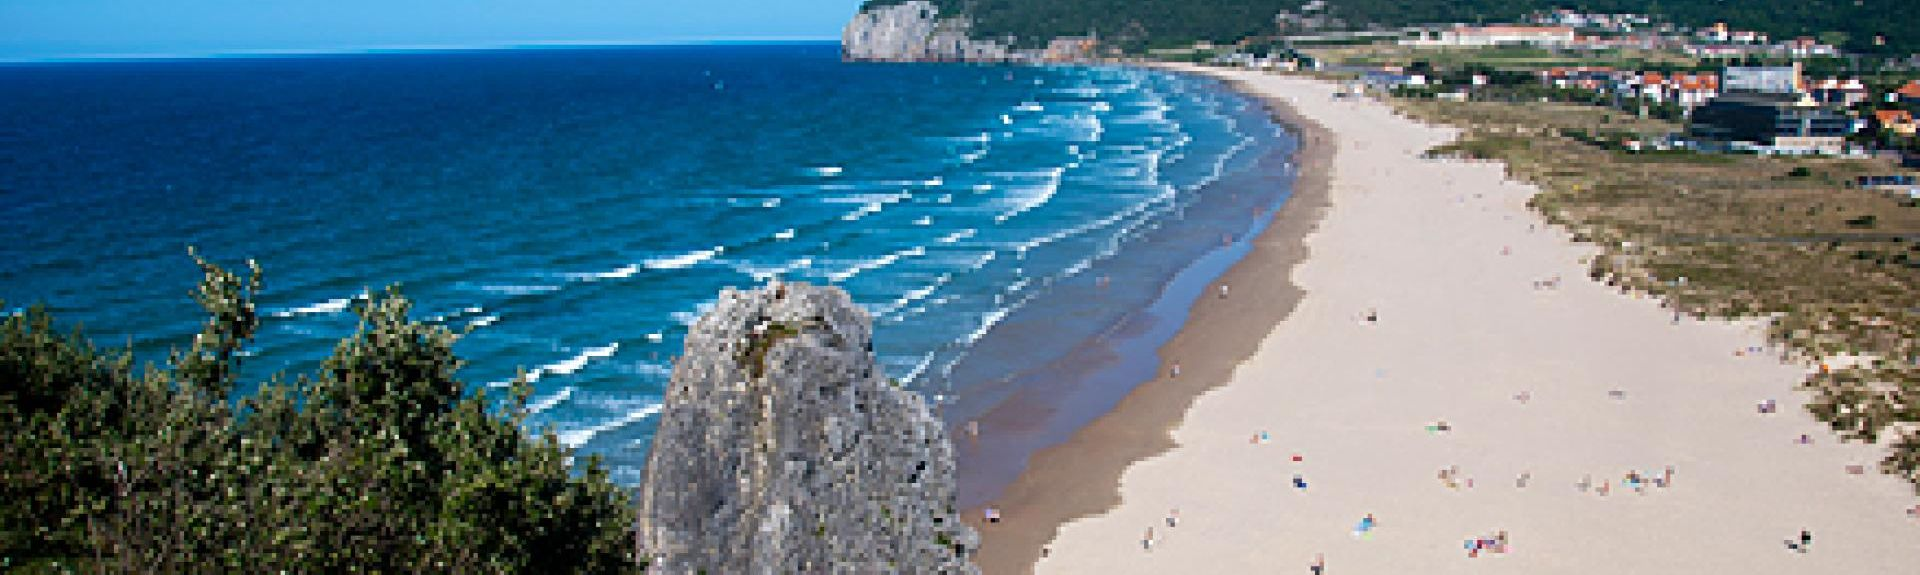 Orinon Beach, Laredo, Spain